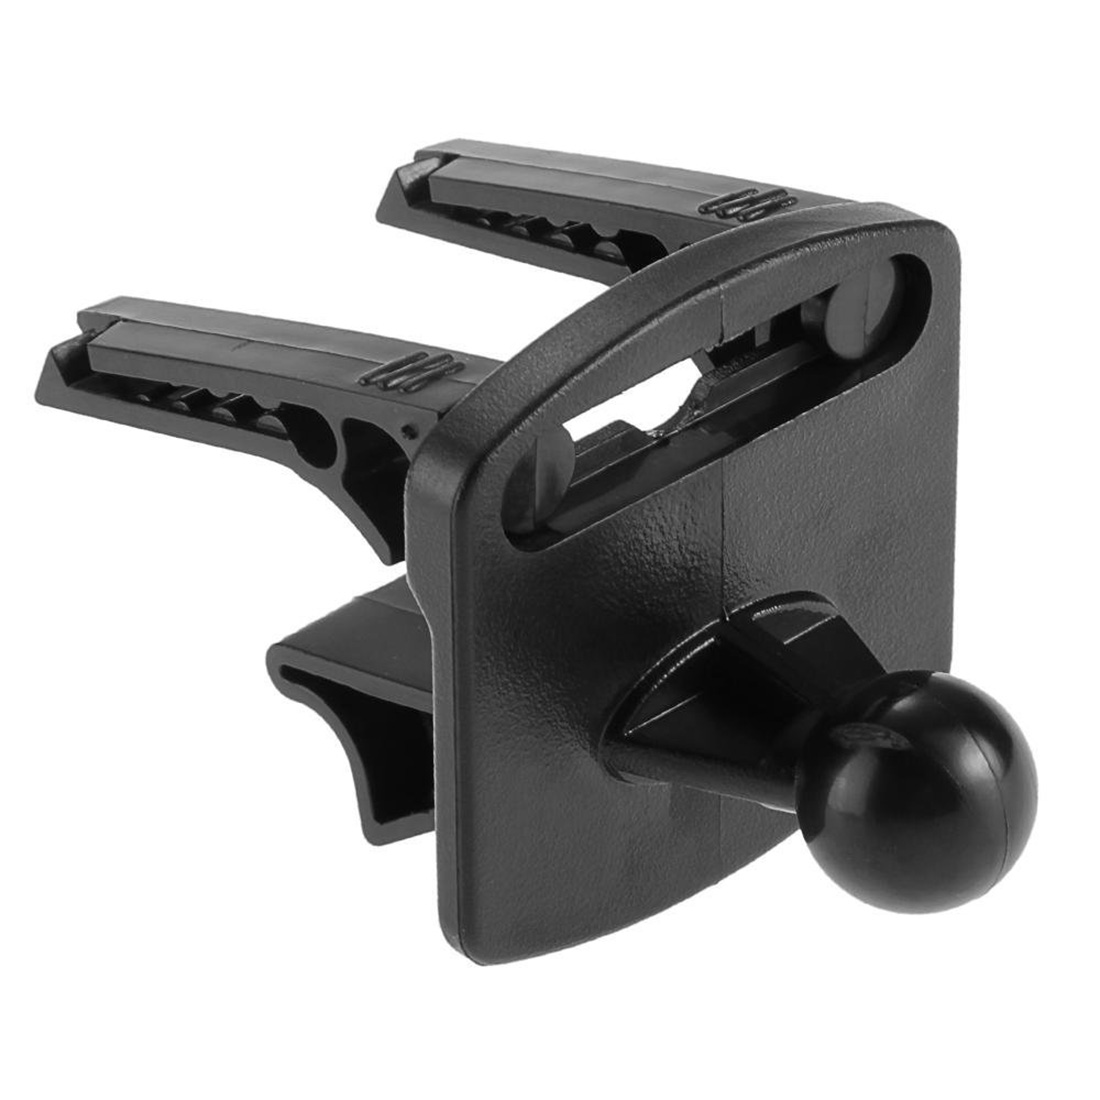 Etmakit New Arrival Promotions Black Plactics Car Vehicle GPS Air Vent Mount Holder Stand Base Set for Garmin Nuvi